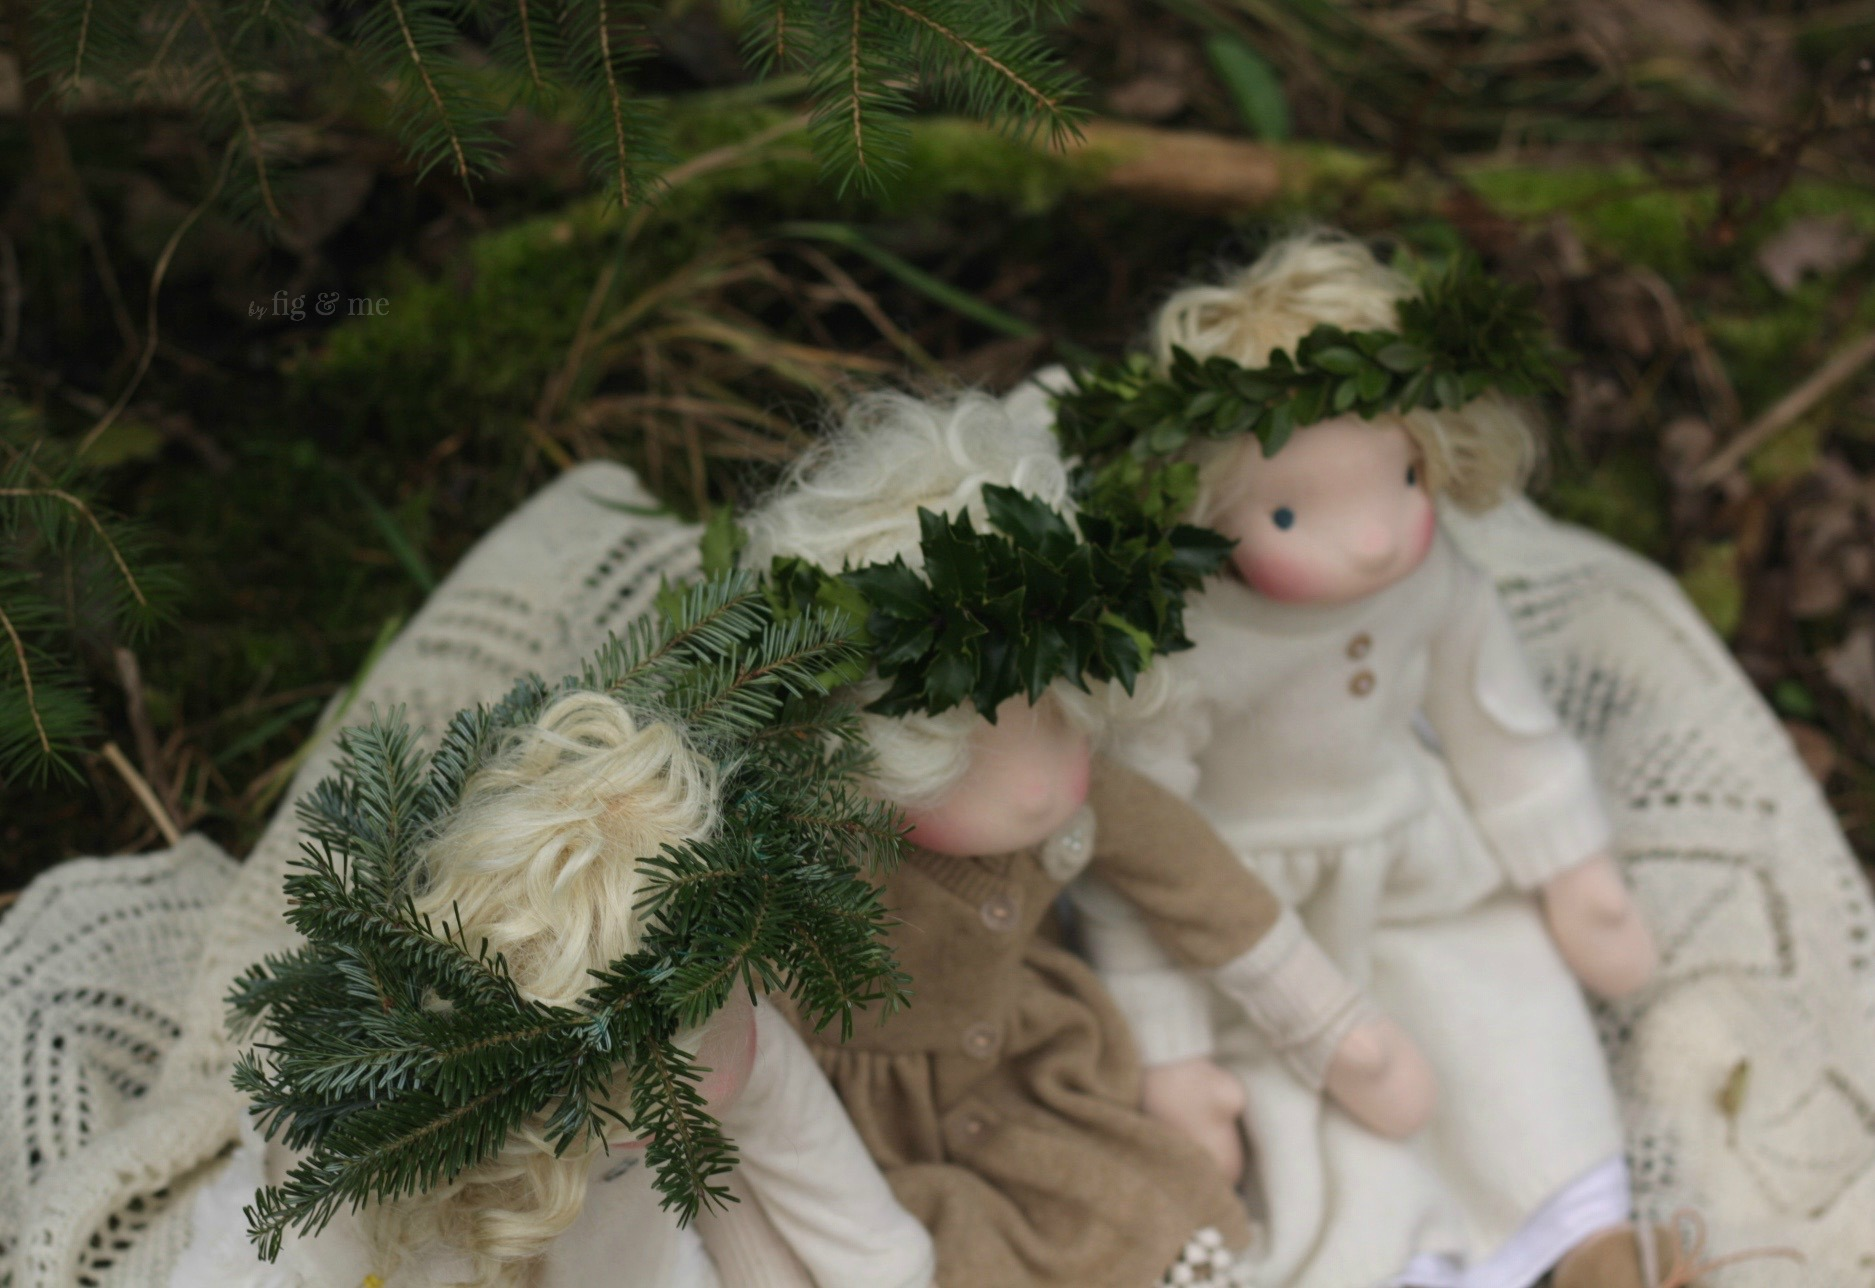 Little winter crowns, by Fig and Me.